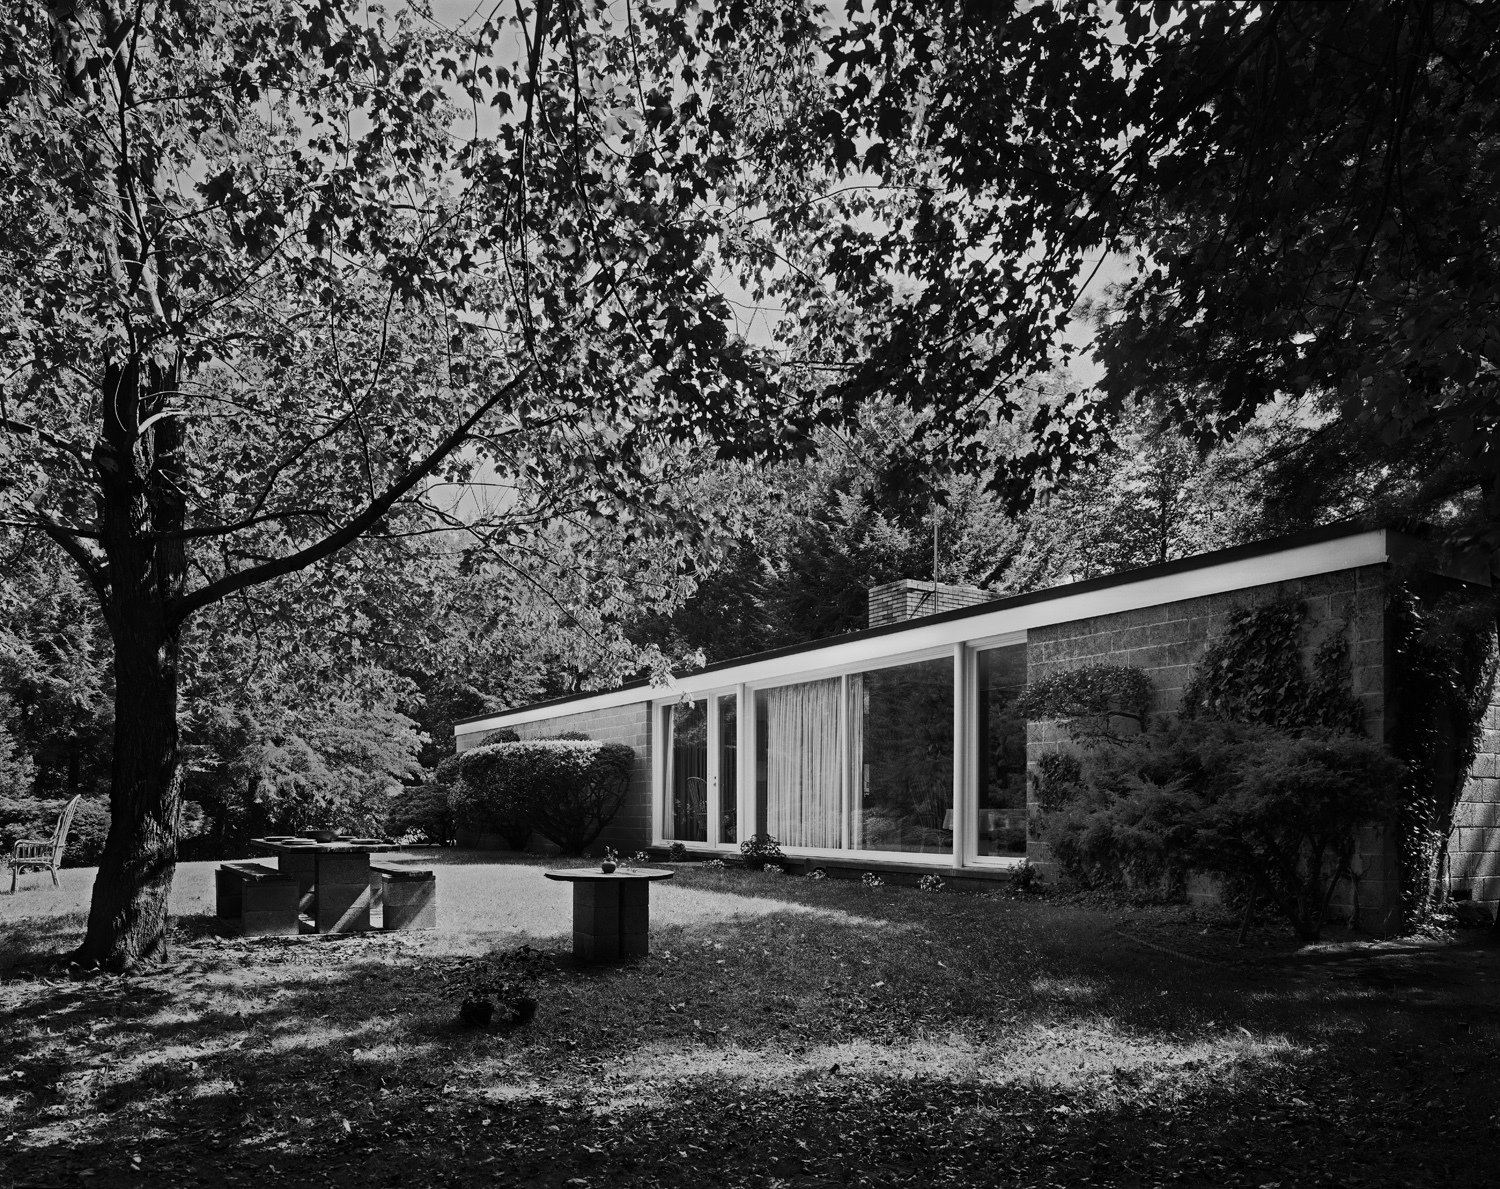 A 1976 photo by Robert Damora shows the Booth House in its forested setting. Robert, who developed techniques to capture a sense of space and volume, was once hailed by Walter Gropius as